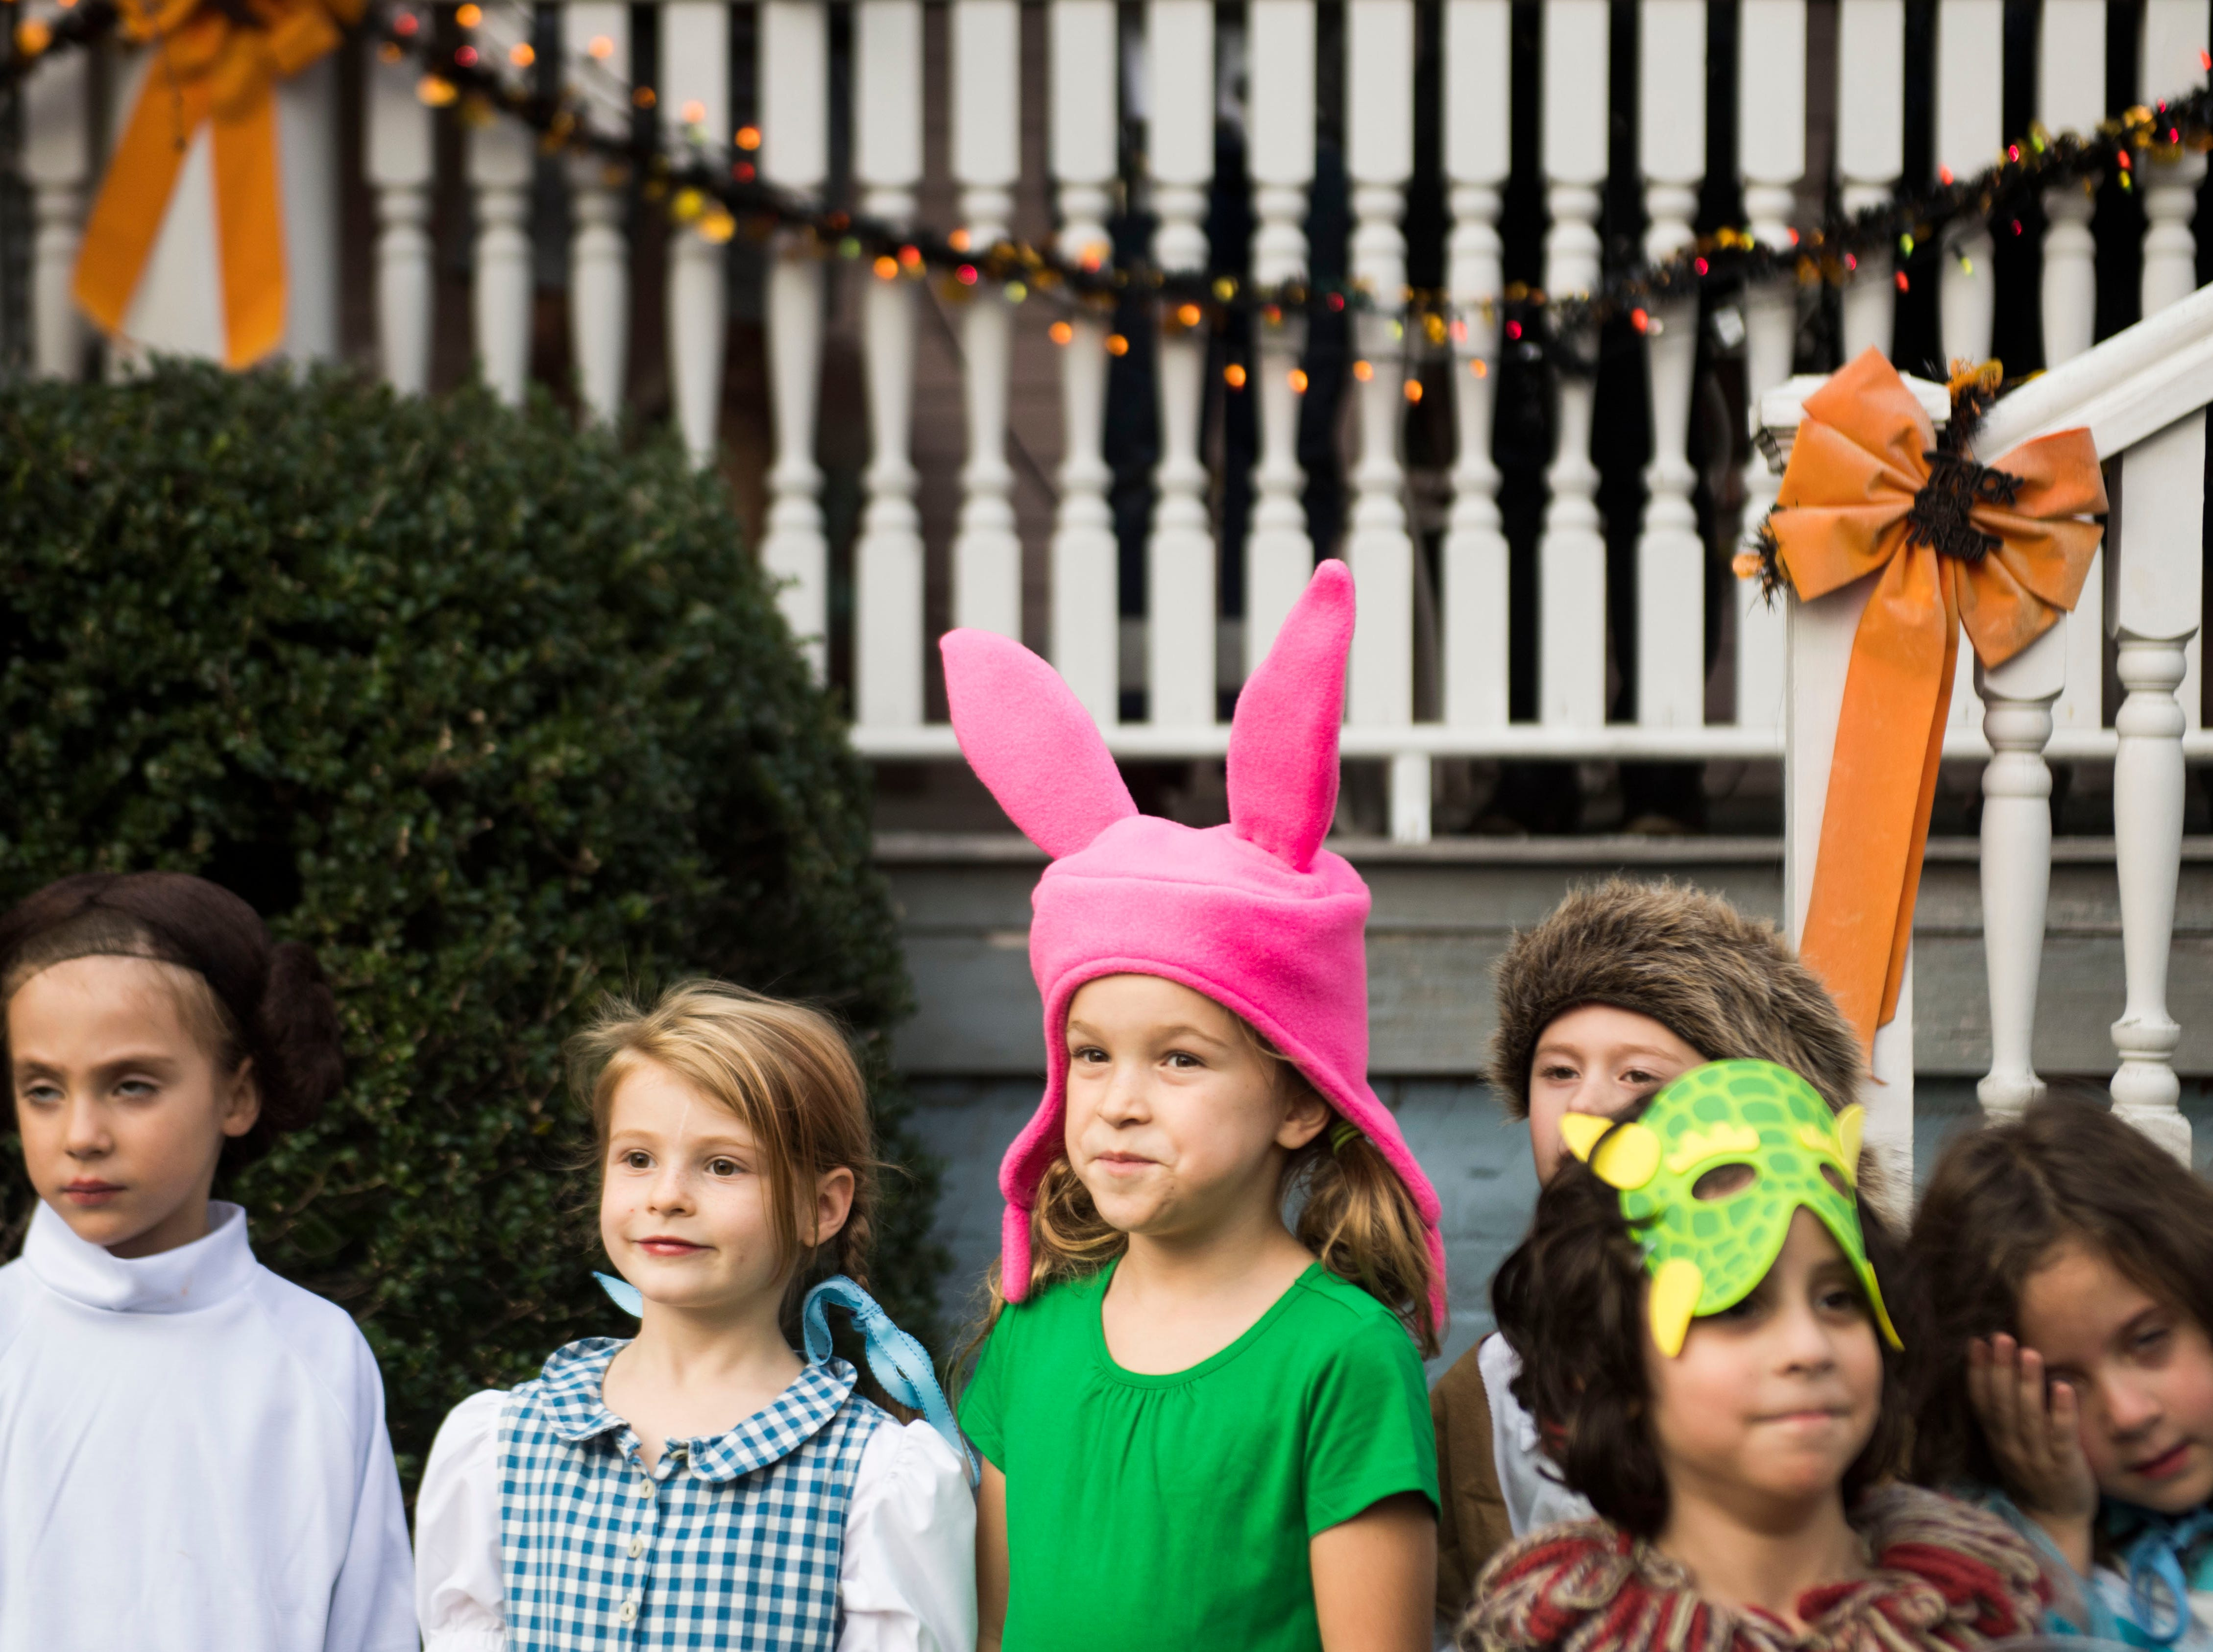 Halloween costume contest participants line up at  Fourth and Gill's neighborhood Halloween party in Knoxville, Wed. Oct. 31, 2018.